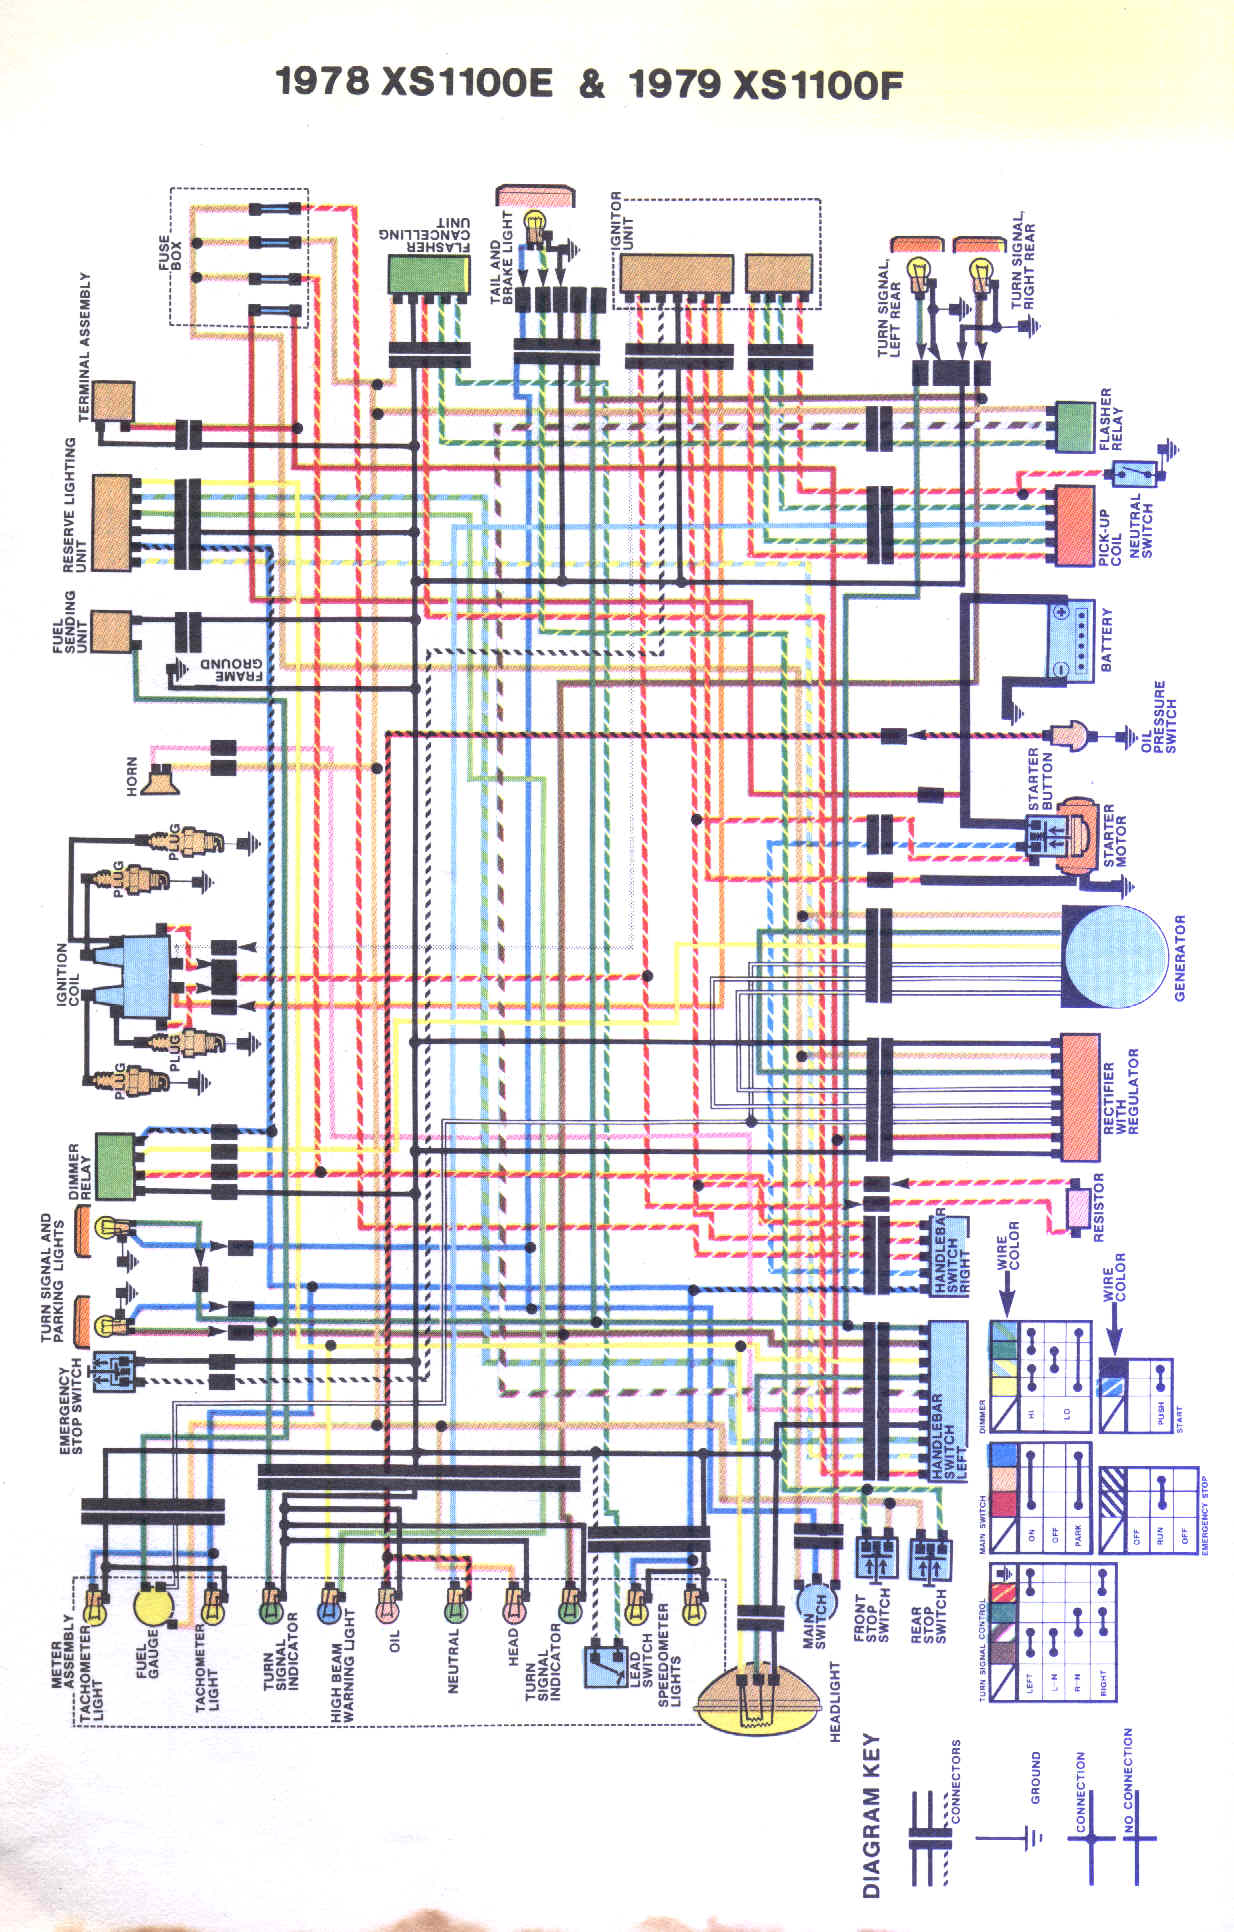 hight resolution of xs1100 wiring diagram simple wiring post1979 yamaha xs1100 wiring diagram trusted wiring diagram electrical wiring xs1100